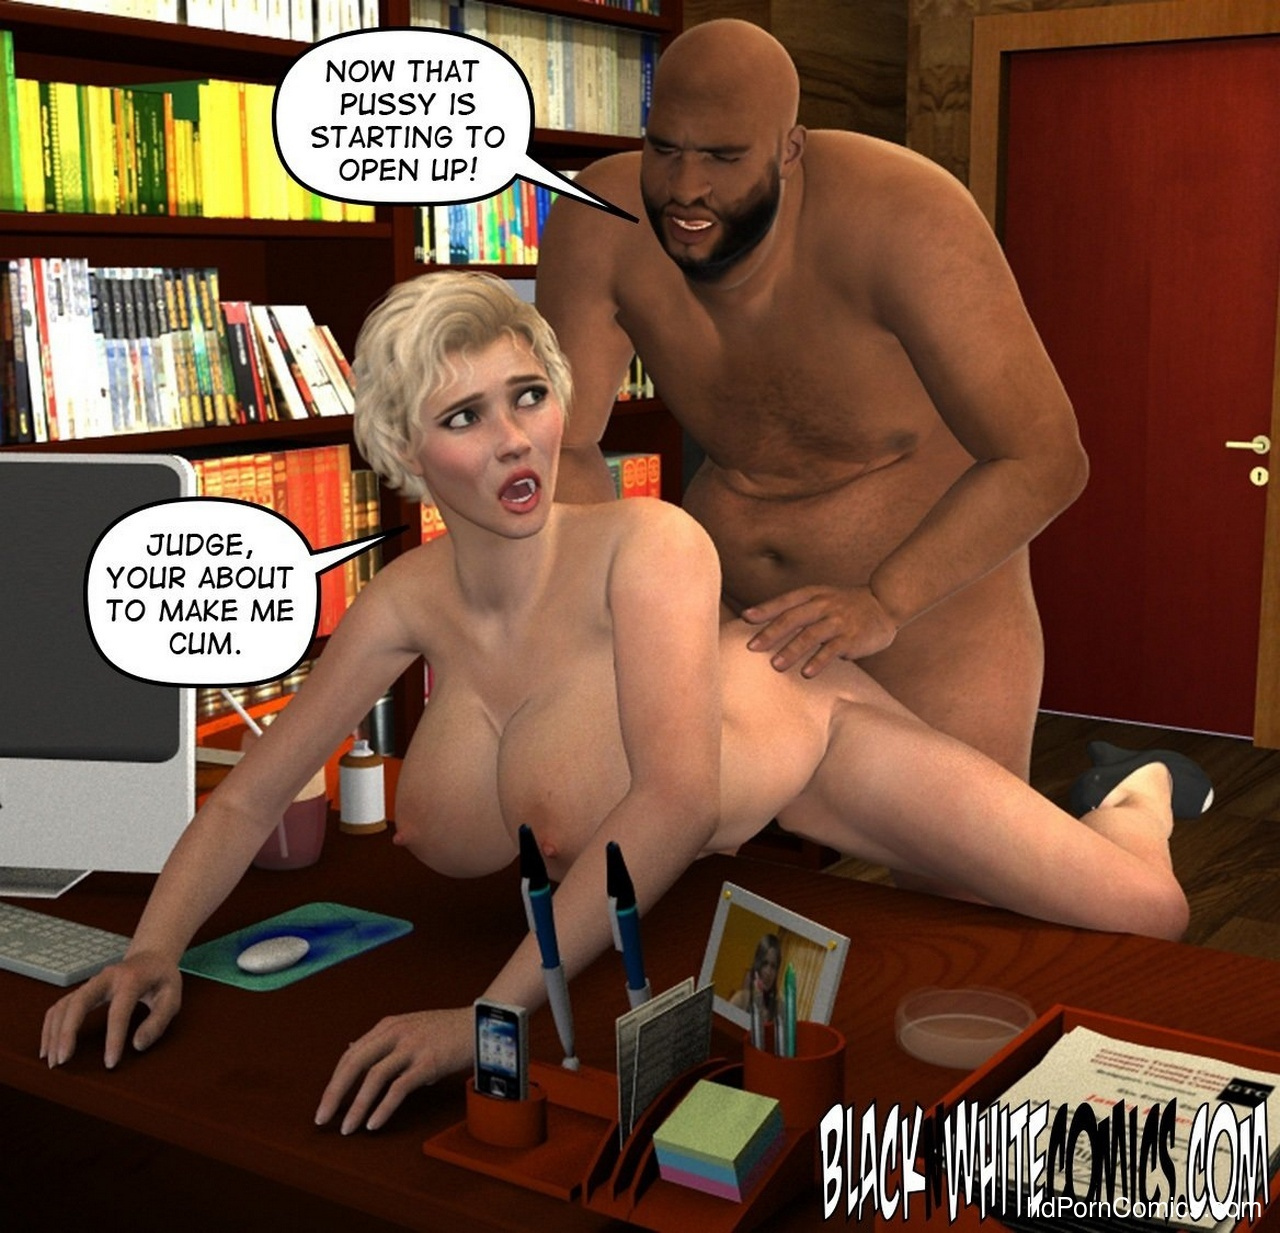 The People's Court 32 free sex comic